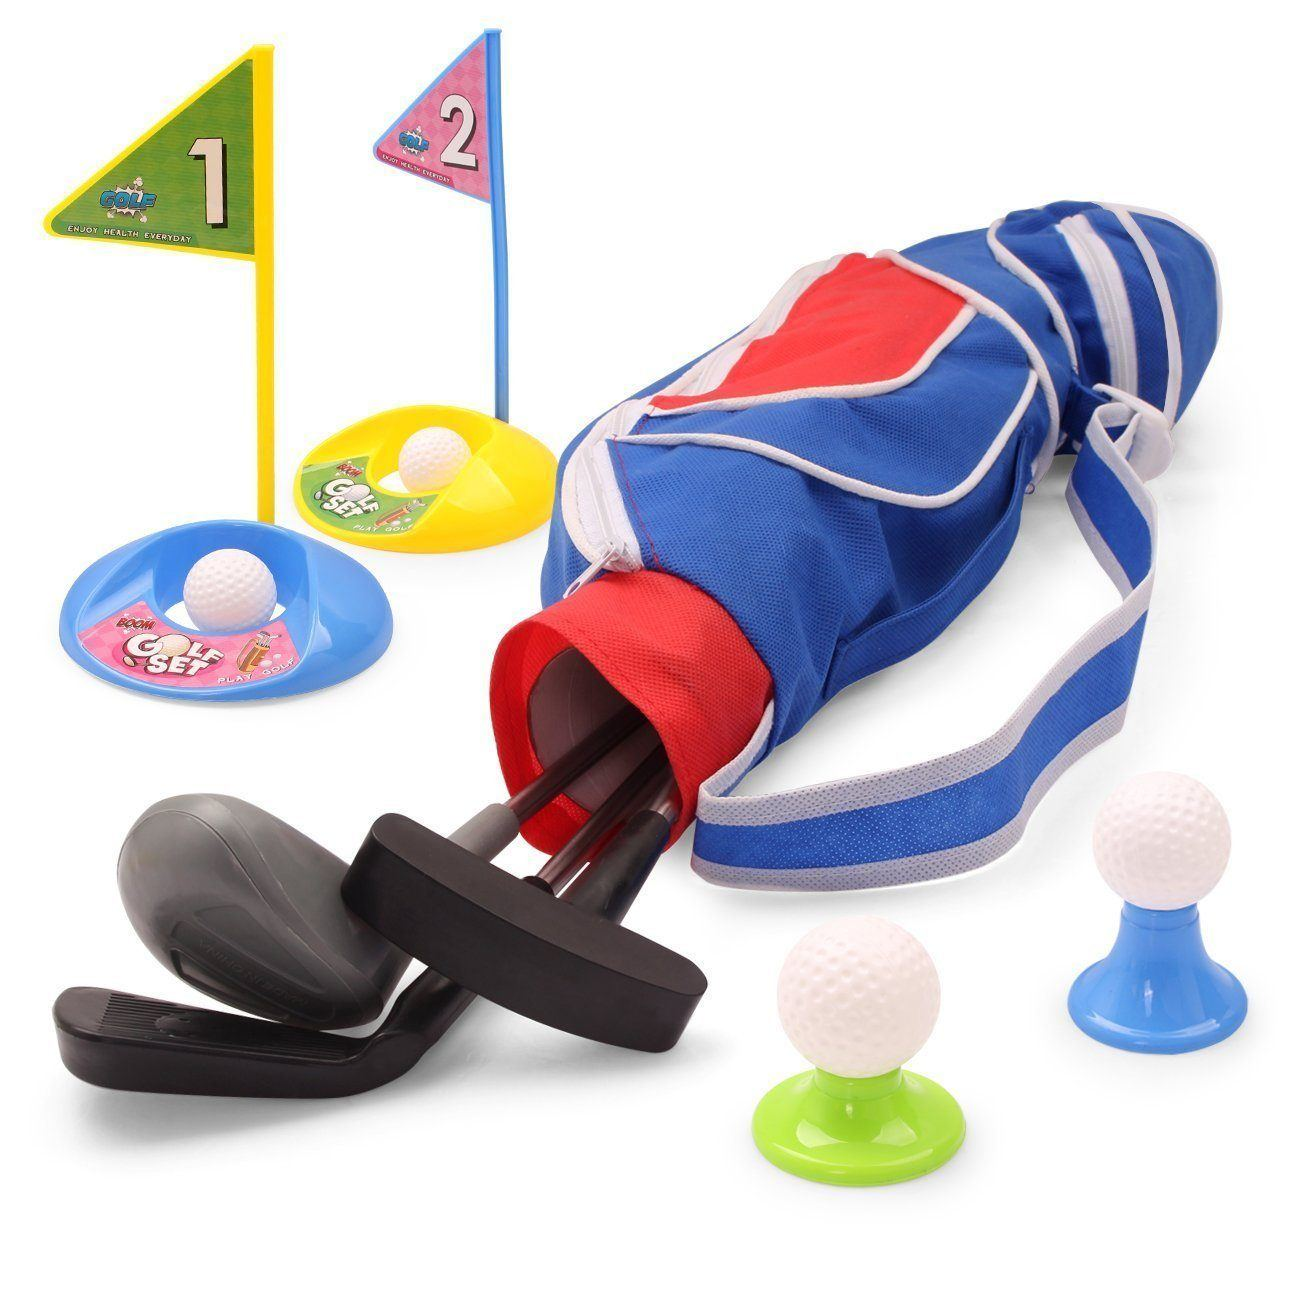 552e91a90ad The best toddler golf clubs to introduce golf to your child.